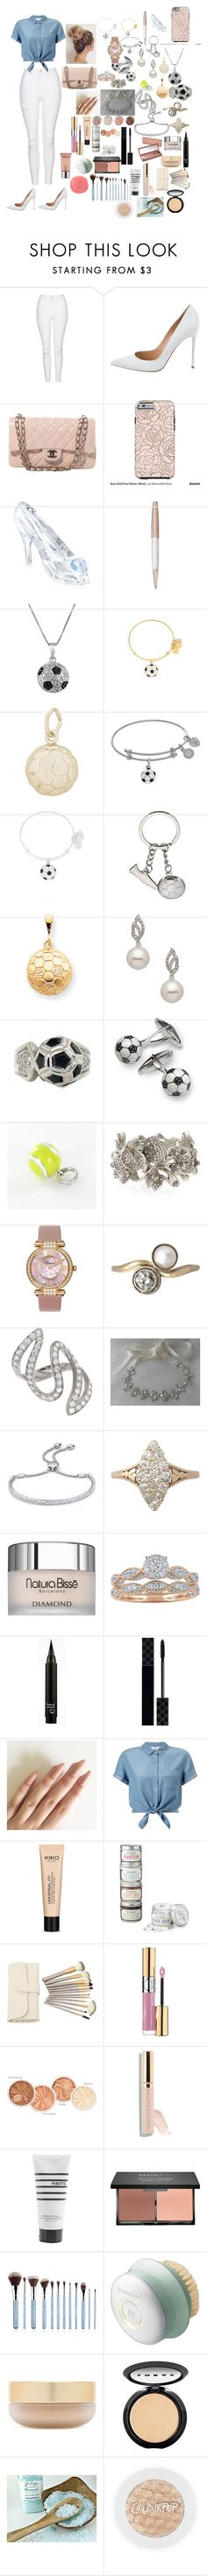 """""""CITY                                                                                         """" by fashion-dora15 ❤ liked on Polyvore featuring Topshop, Gianvito Rossi, Chanel, Swarovski, Jewel Exclusive, Alex and Ani, Rembrandt Charms, Kevin Jewelers, Aaron Basha and Oscar de la Renta"""